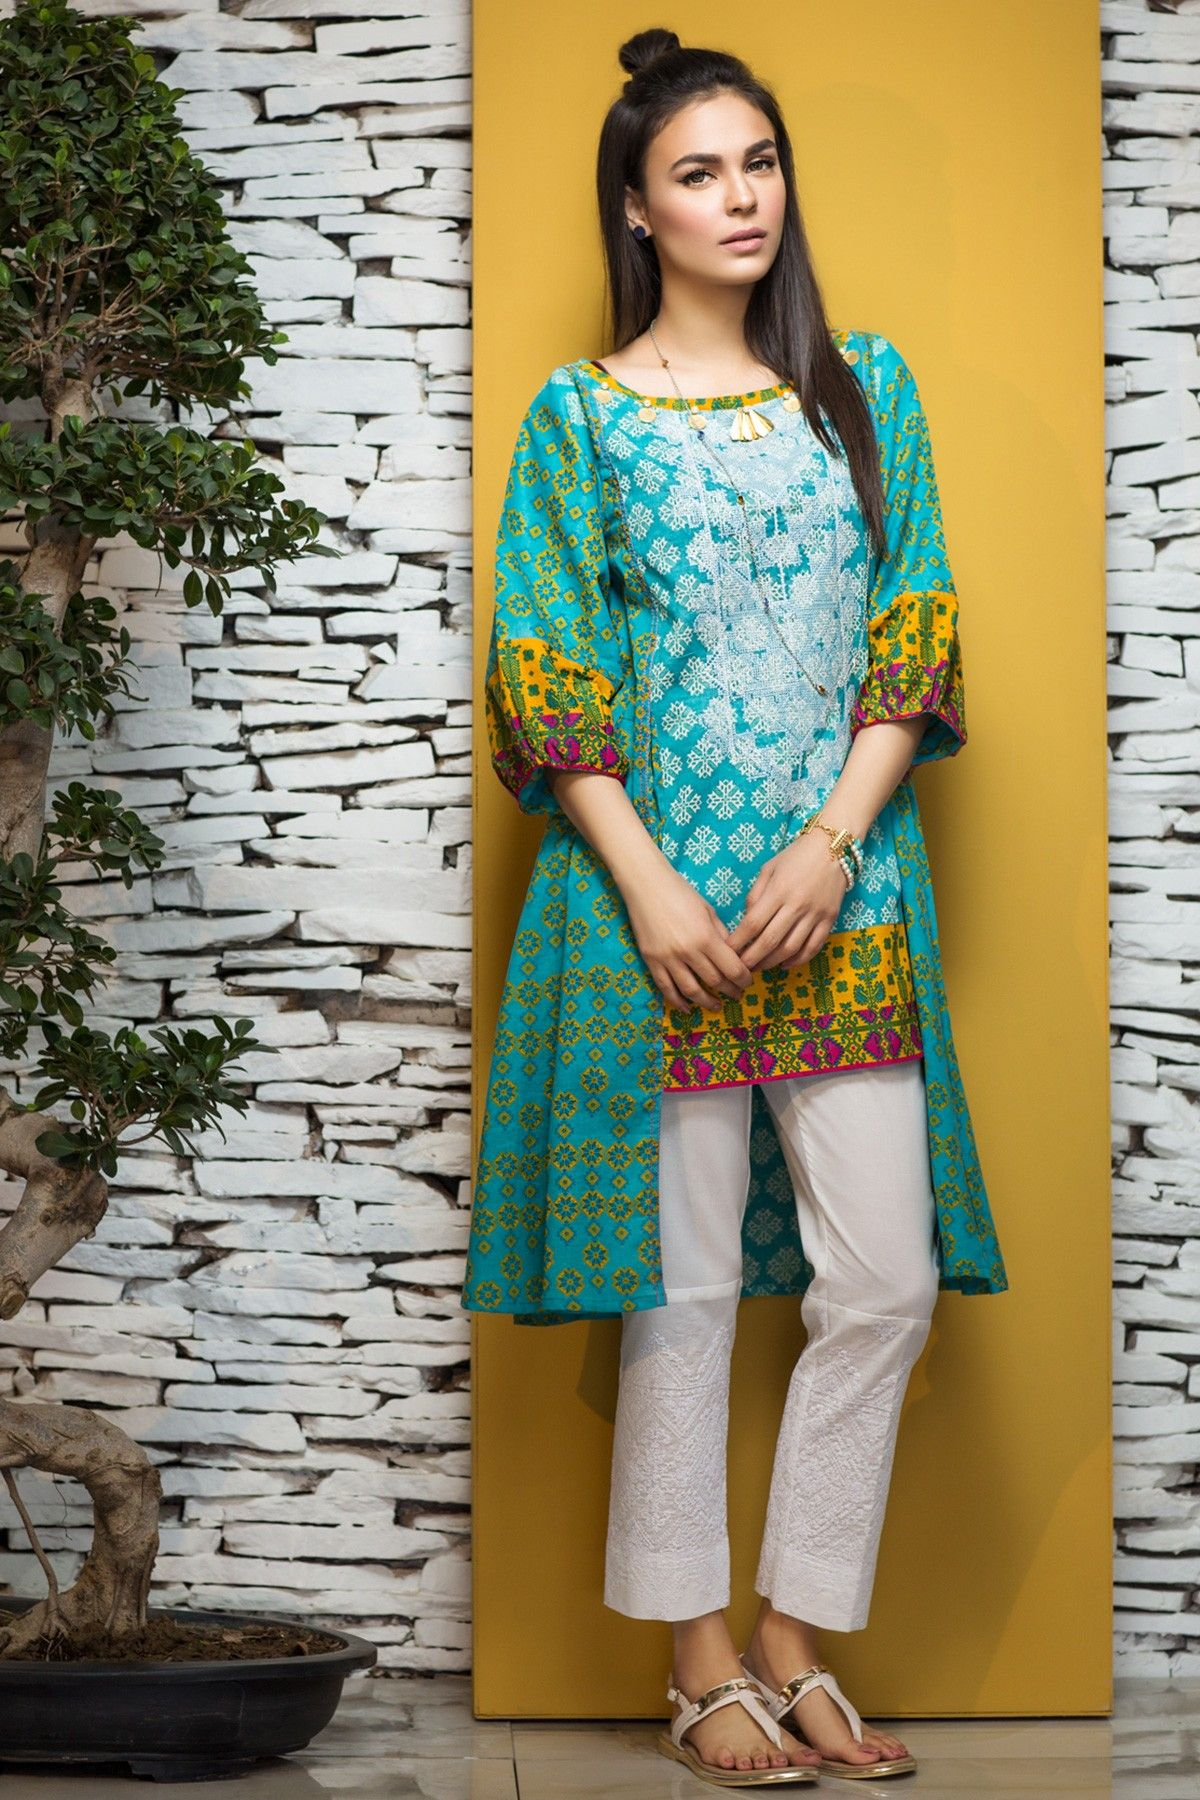 Latest Design Of Clothes | Khaadi Latest Summer Lawn Dresses Designs Collection 2018 2019